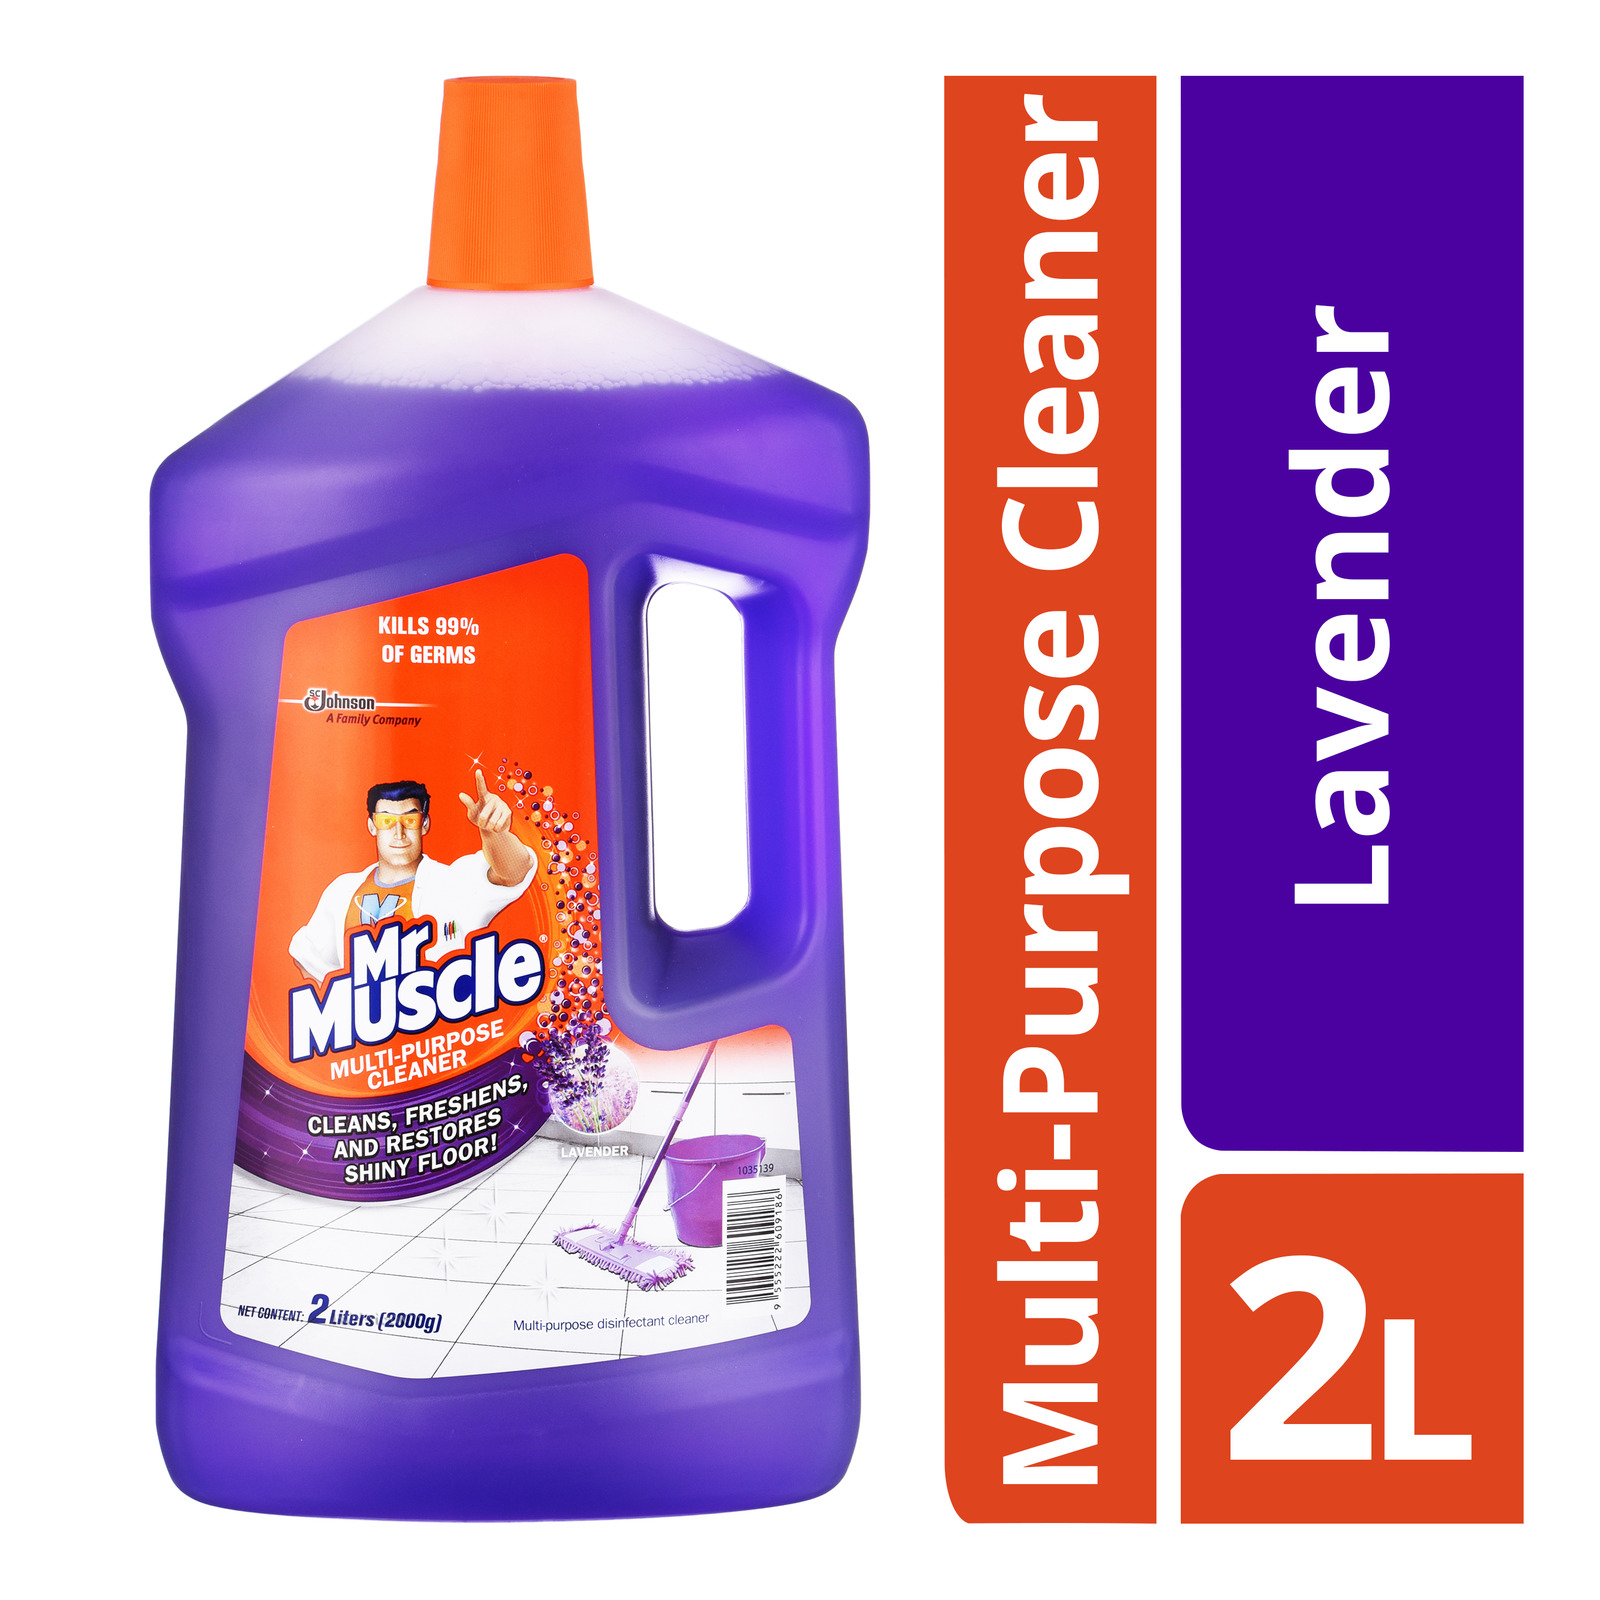 Mr Muscle 5 in 1 Multi-Purpose Cleaner - Lavender